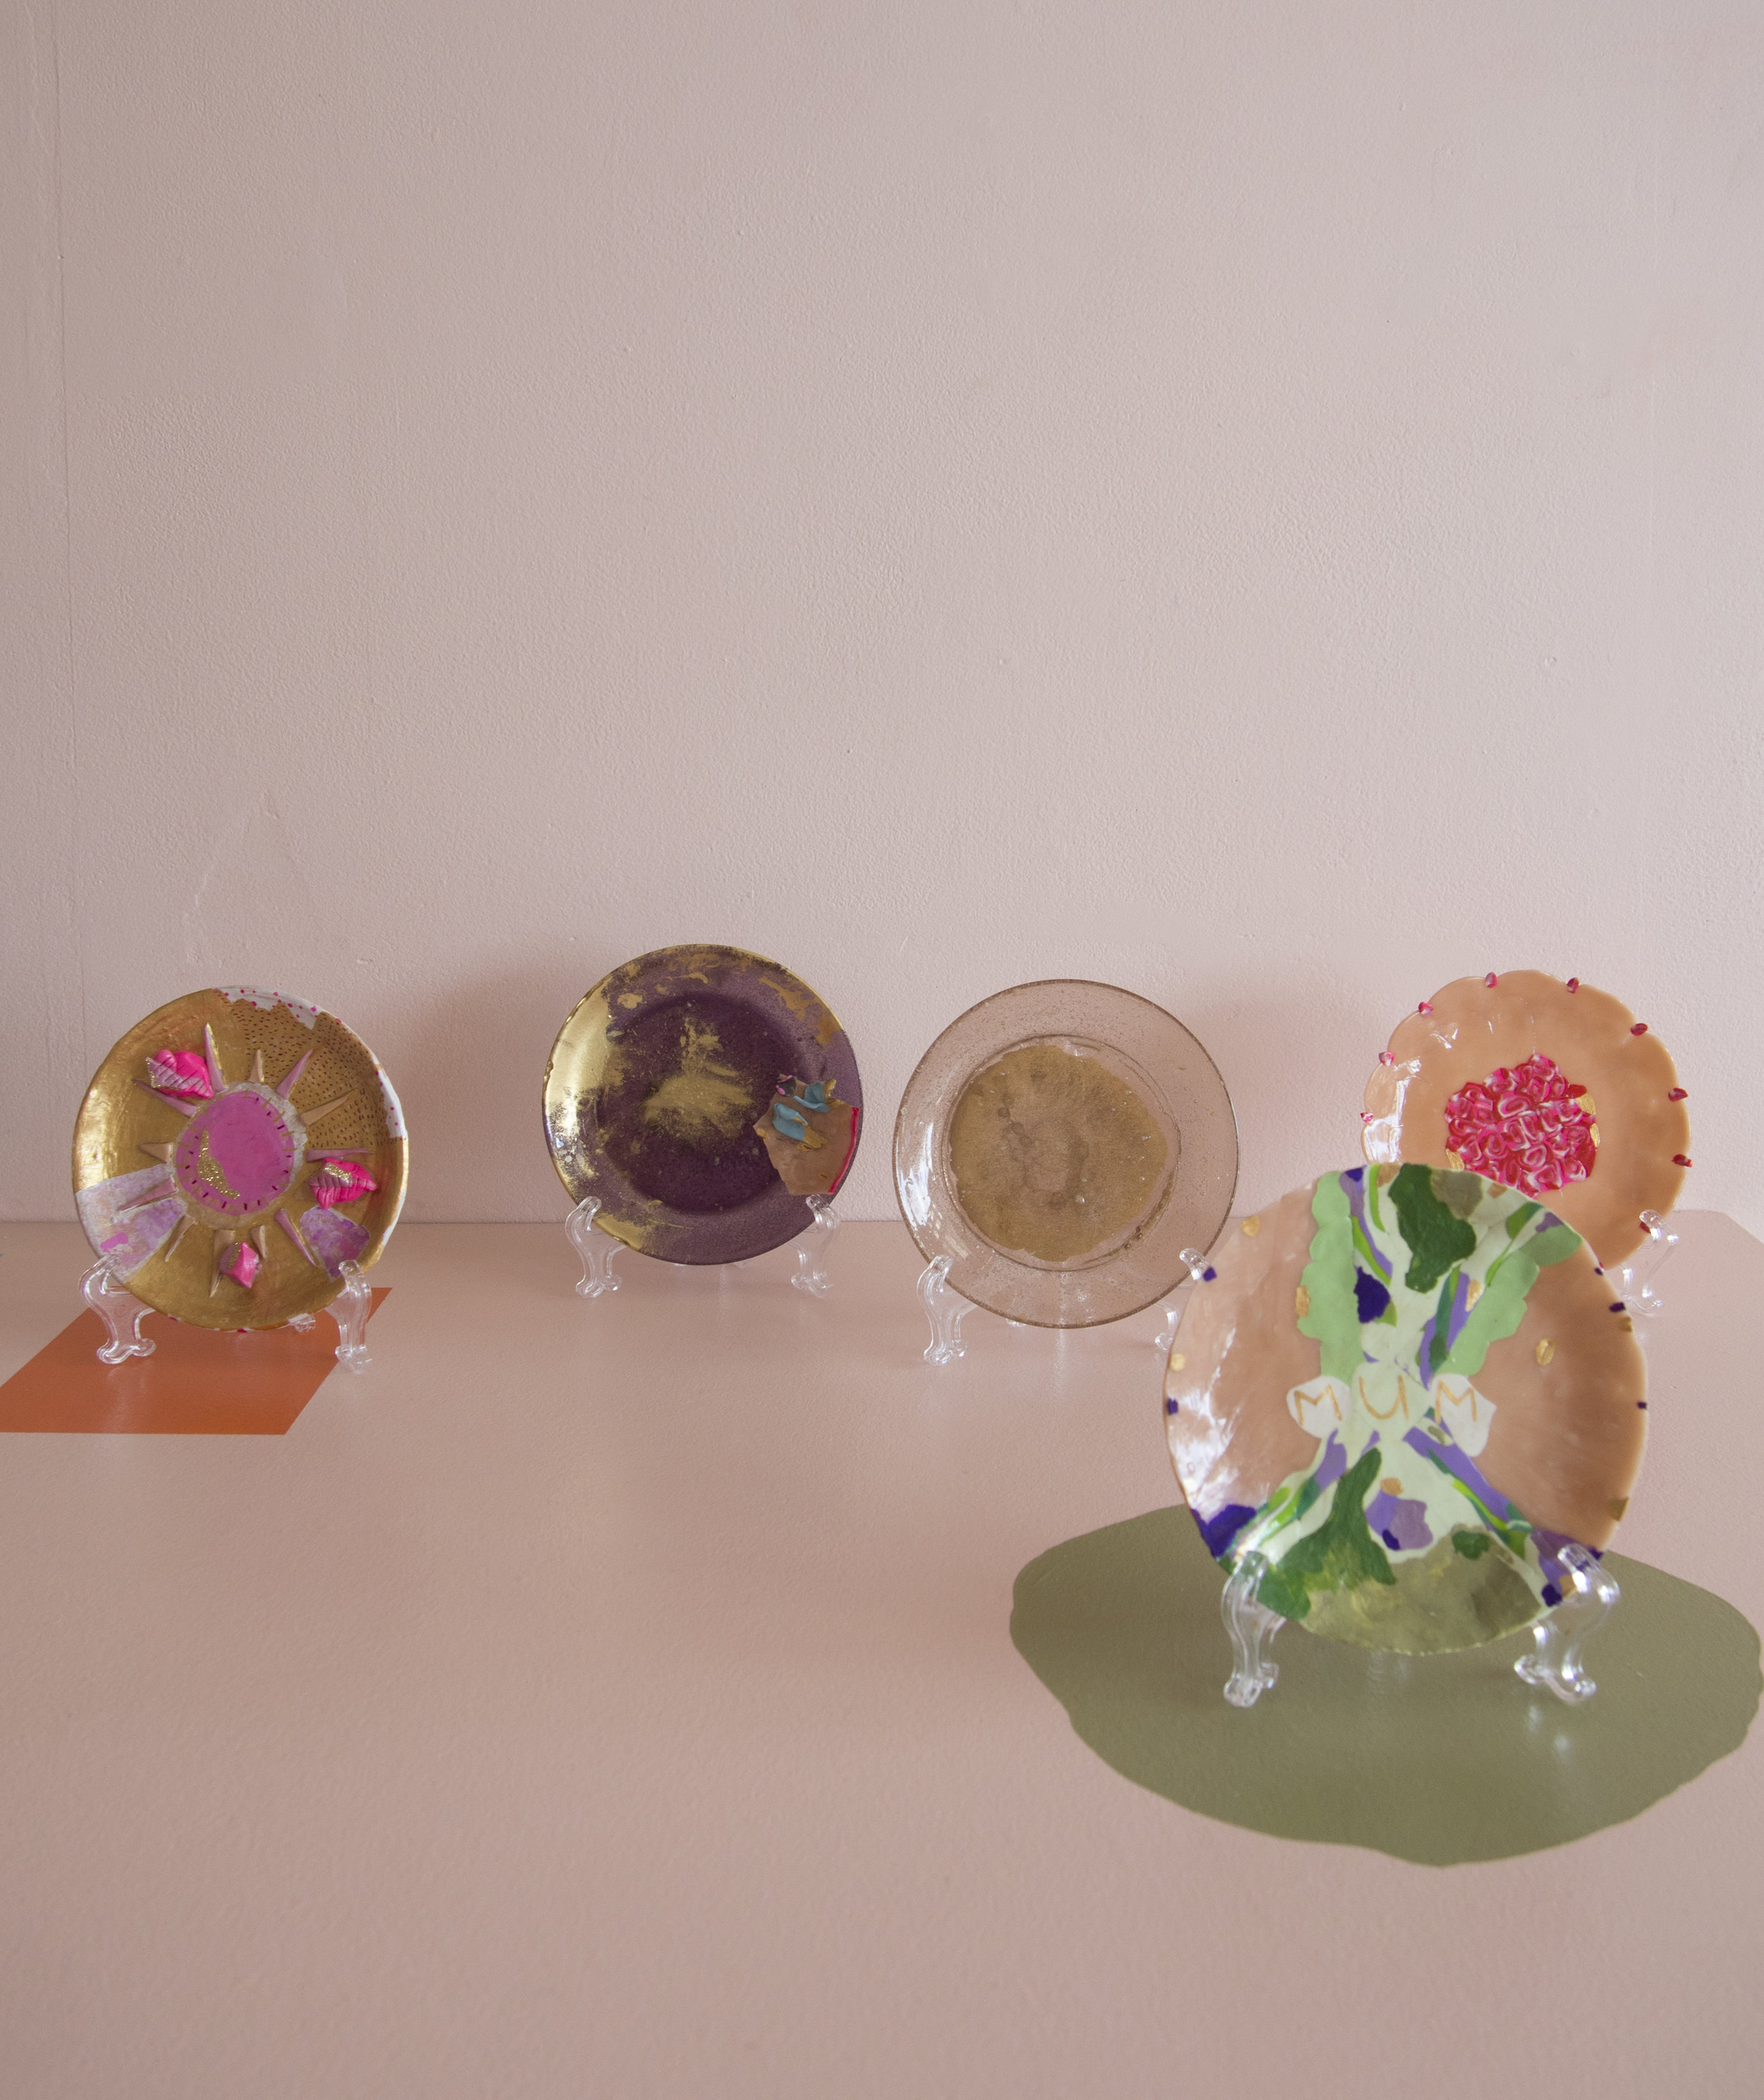 Plate 1; Plate 2, Plate 3, Plate 4, Mum    Molly Cook   resin, fimo, gold resin powder, acrylic paint